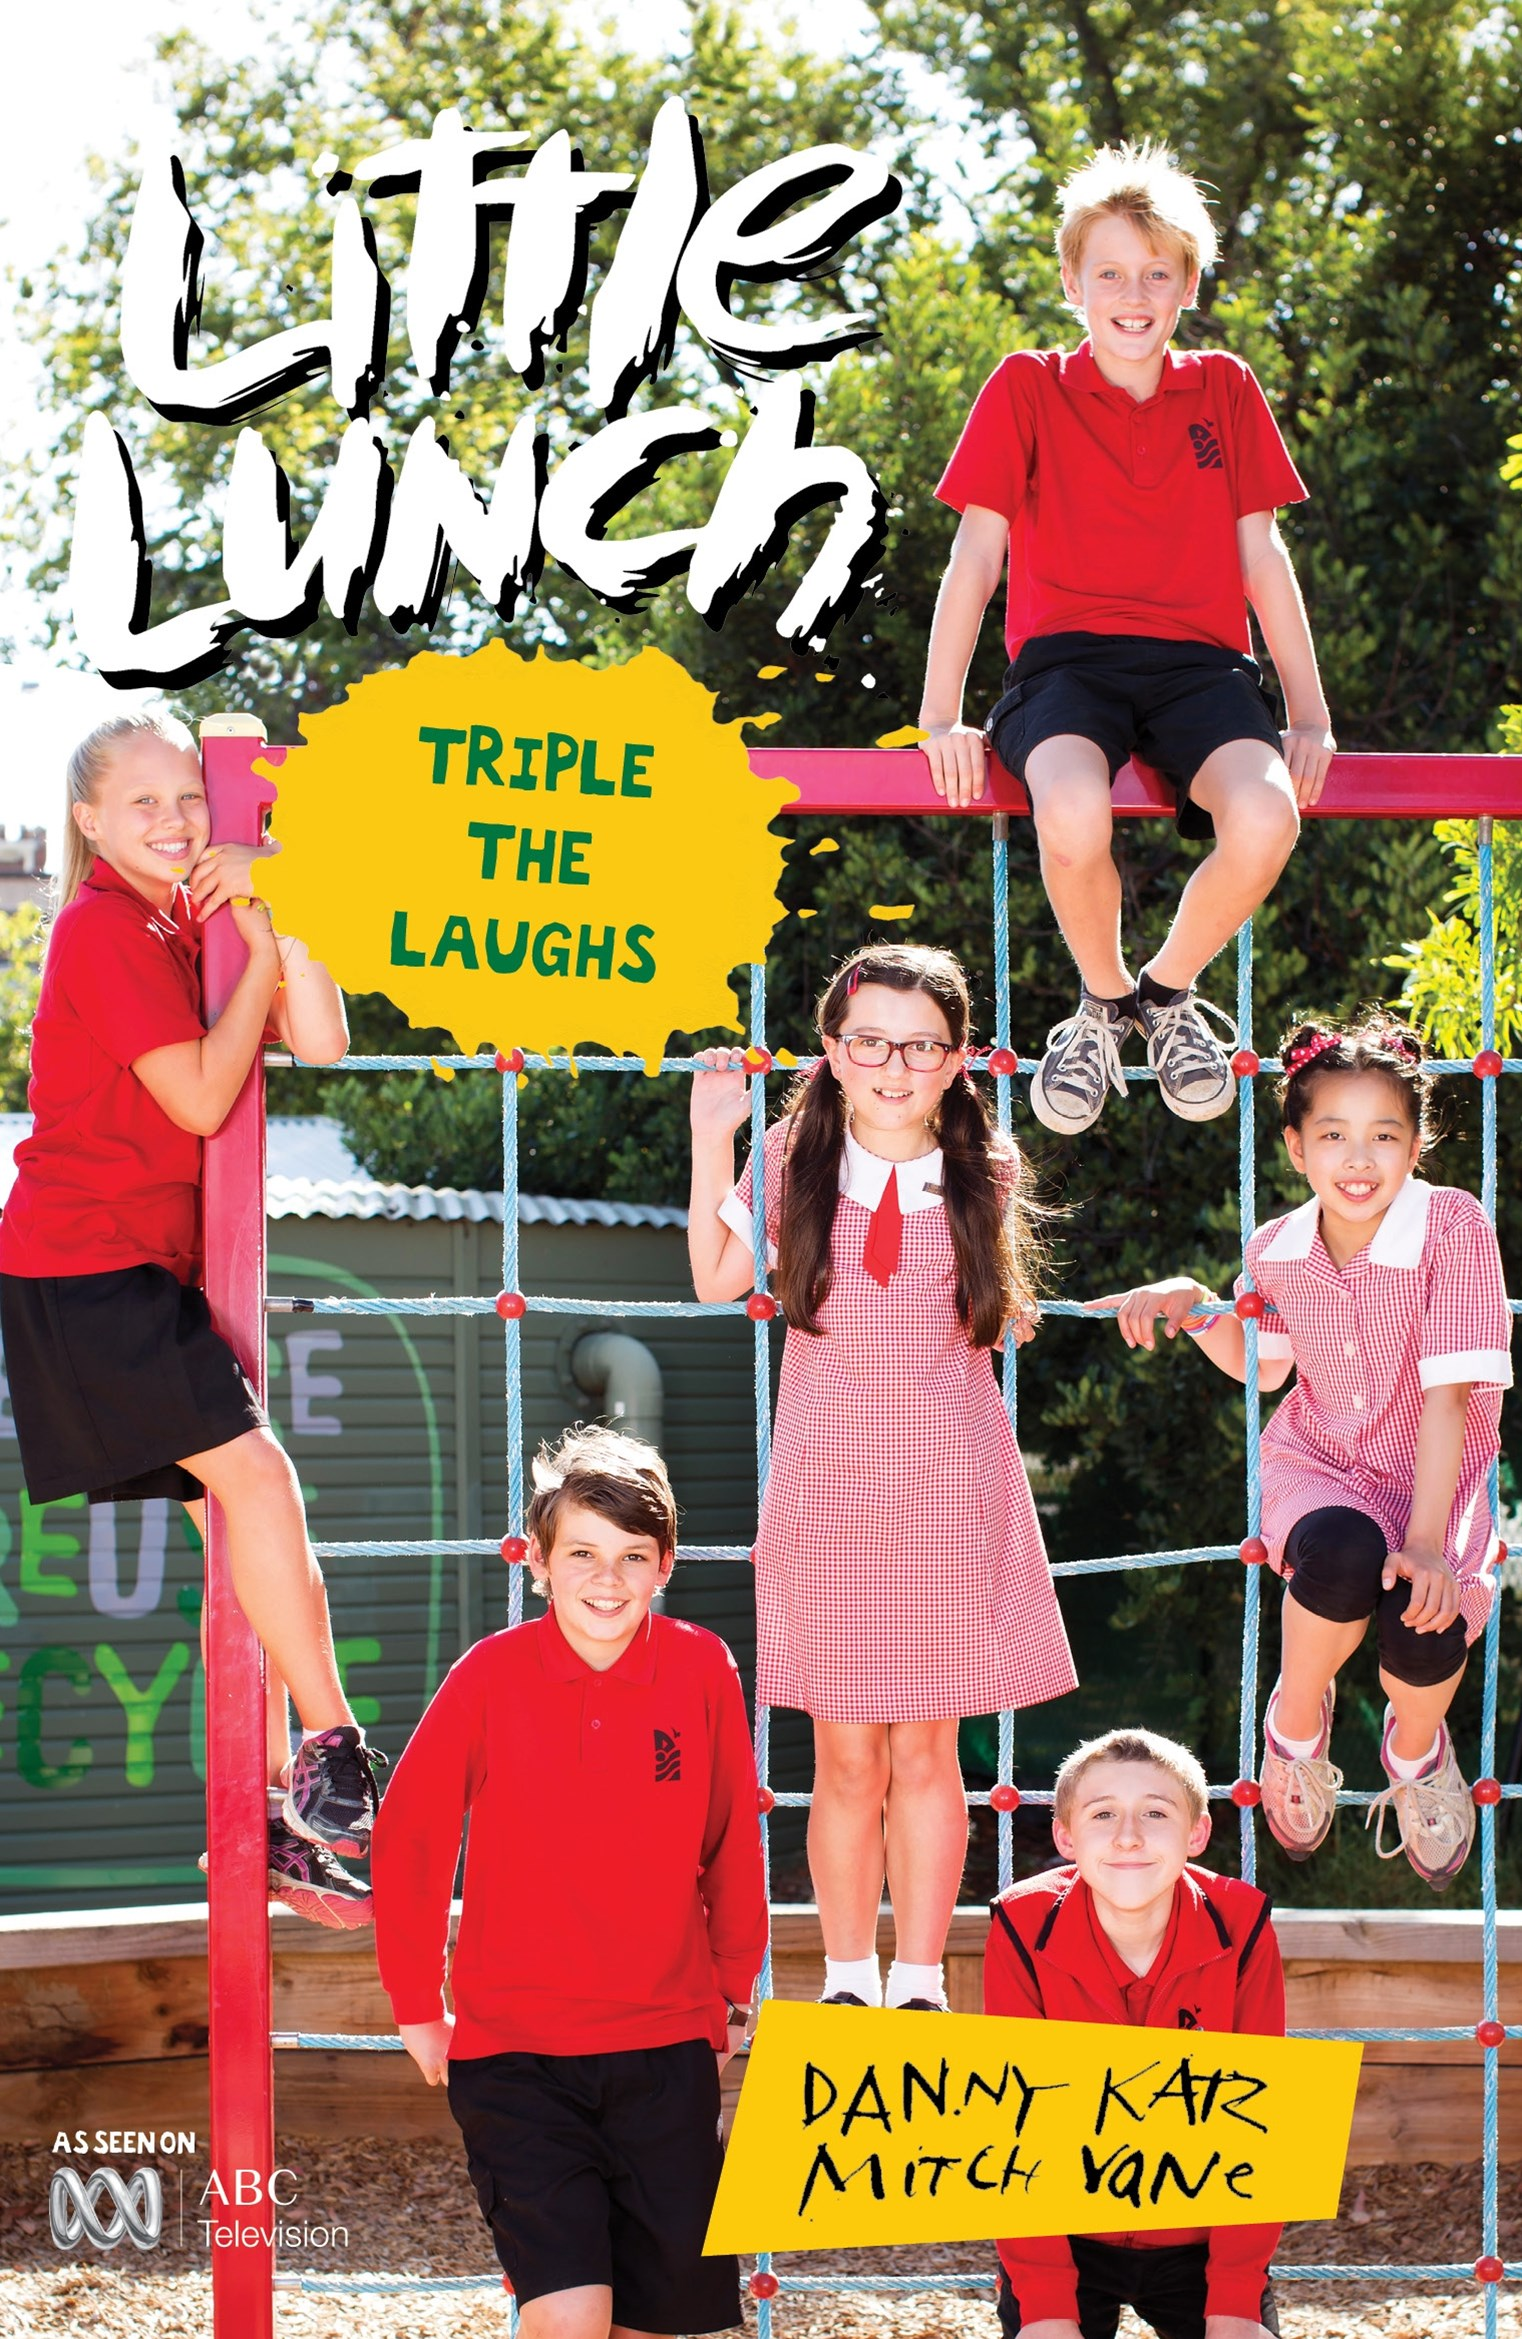 Little Lunch: Triple the Laughs